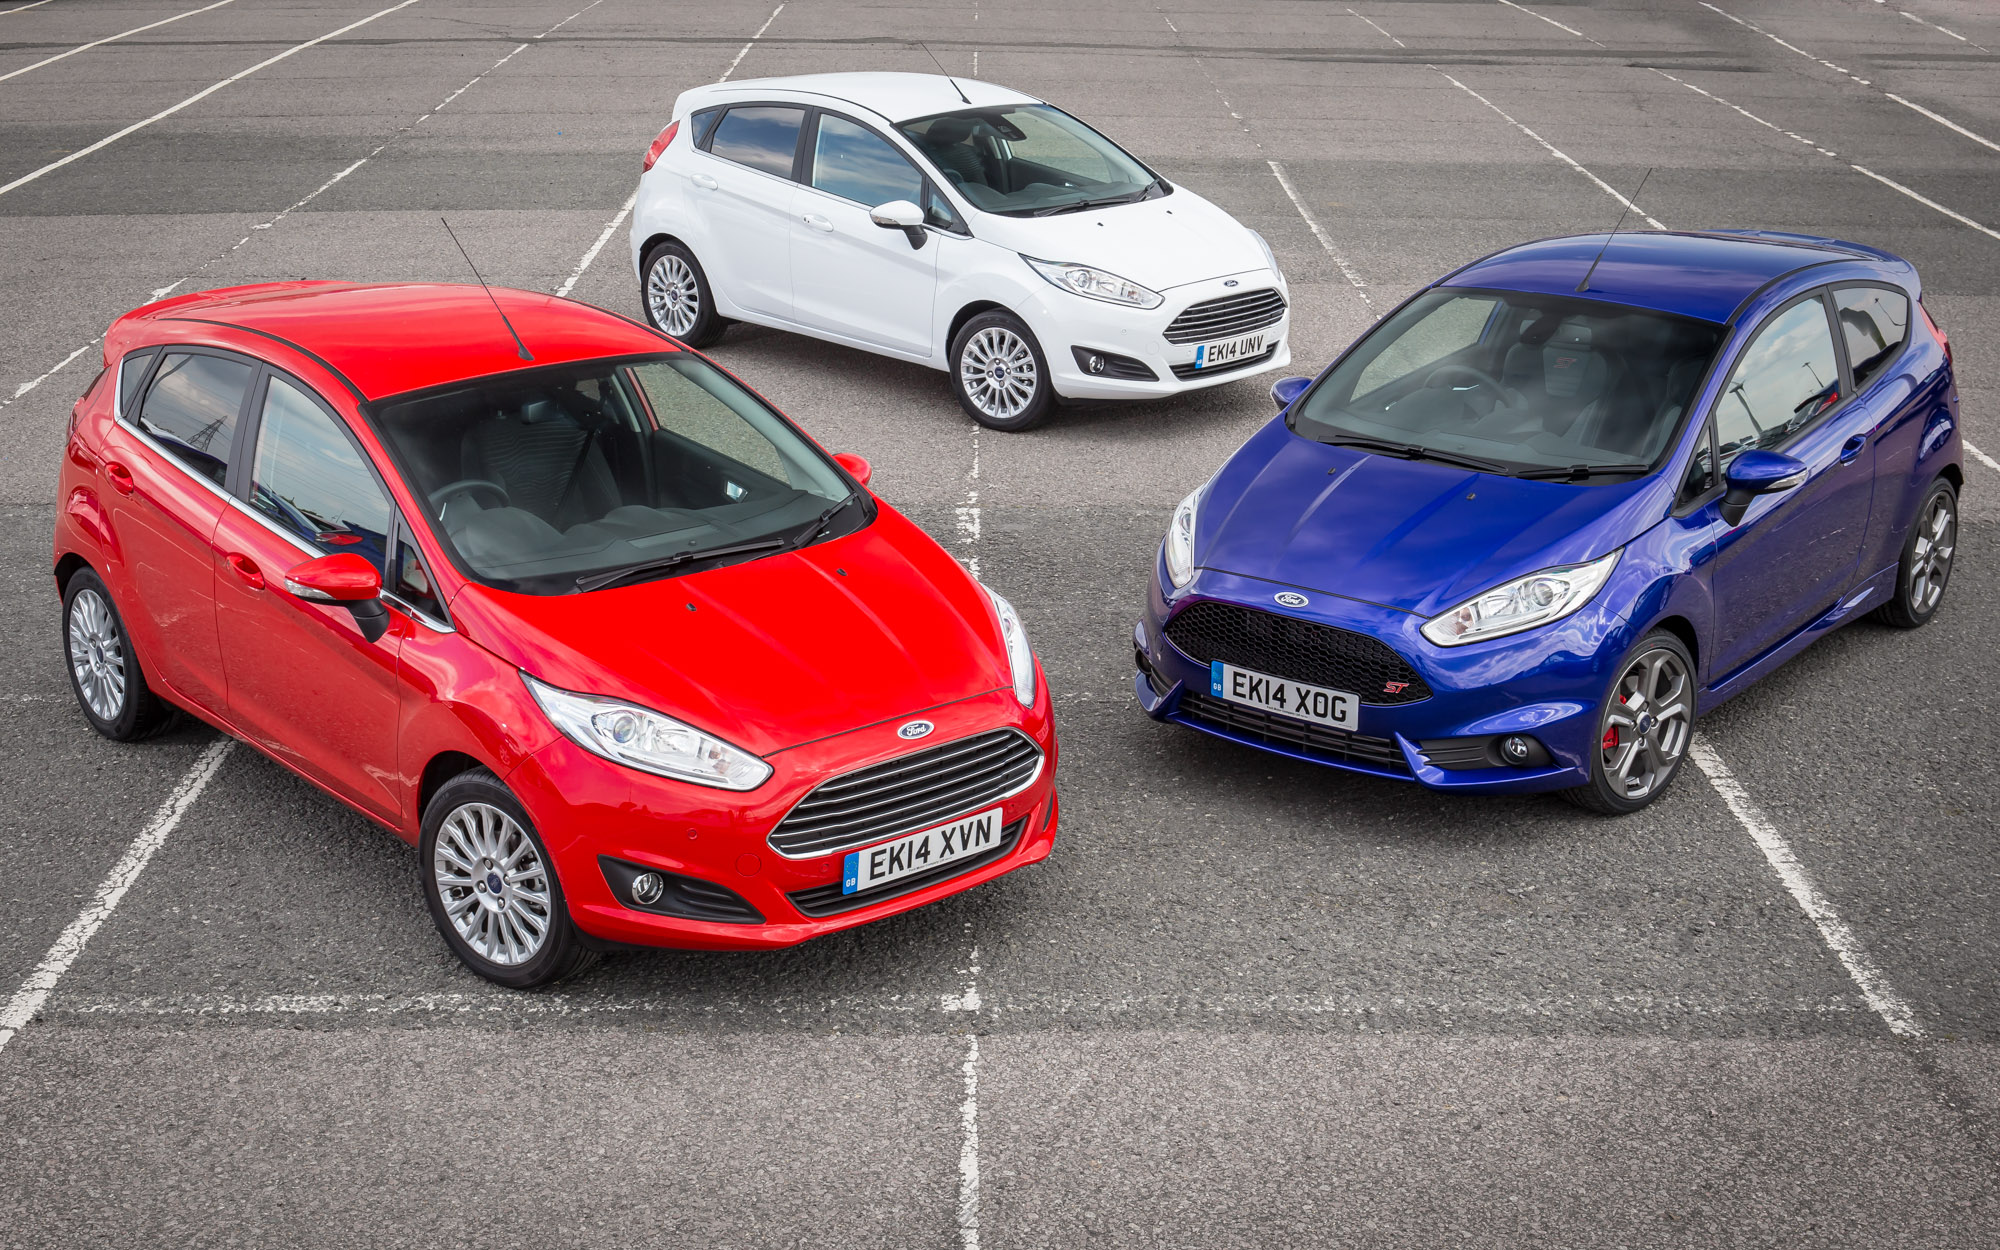 Ford Fiesta Uk Exterior Interior Dimensions Carwow